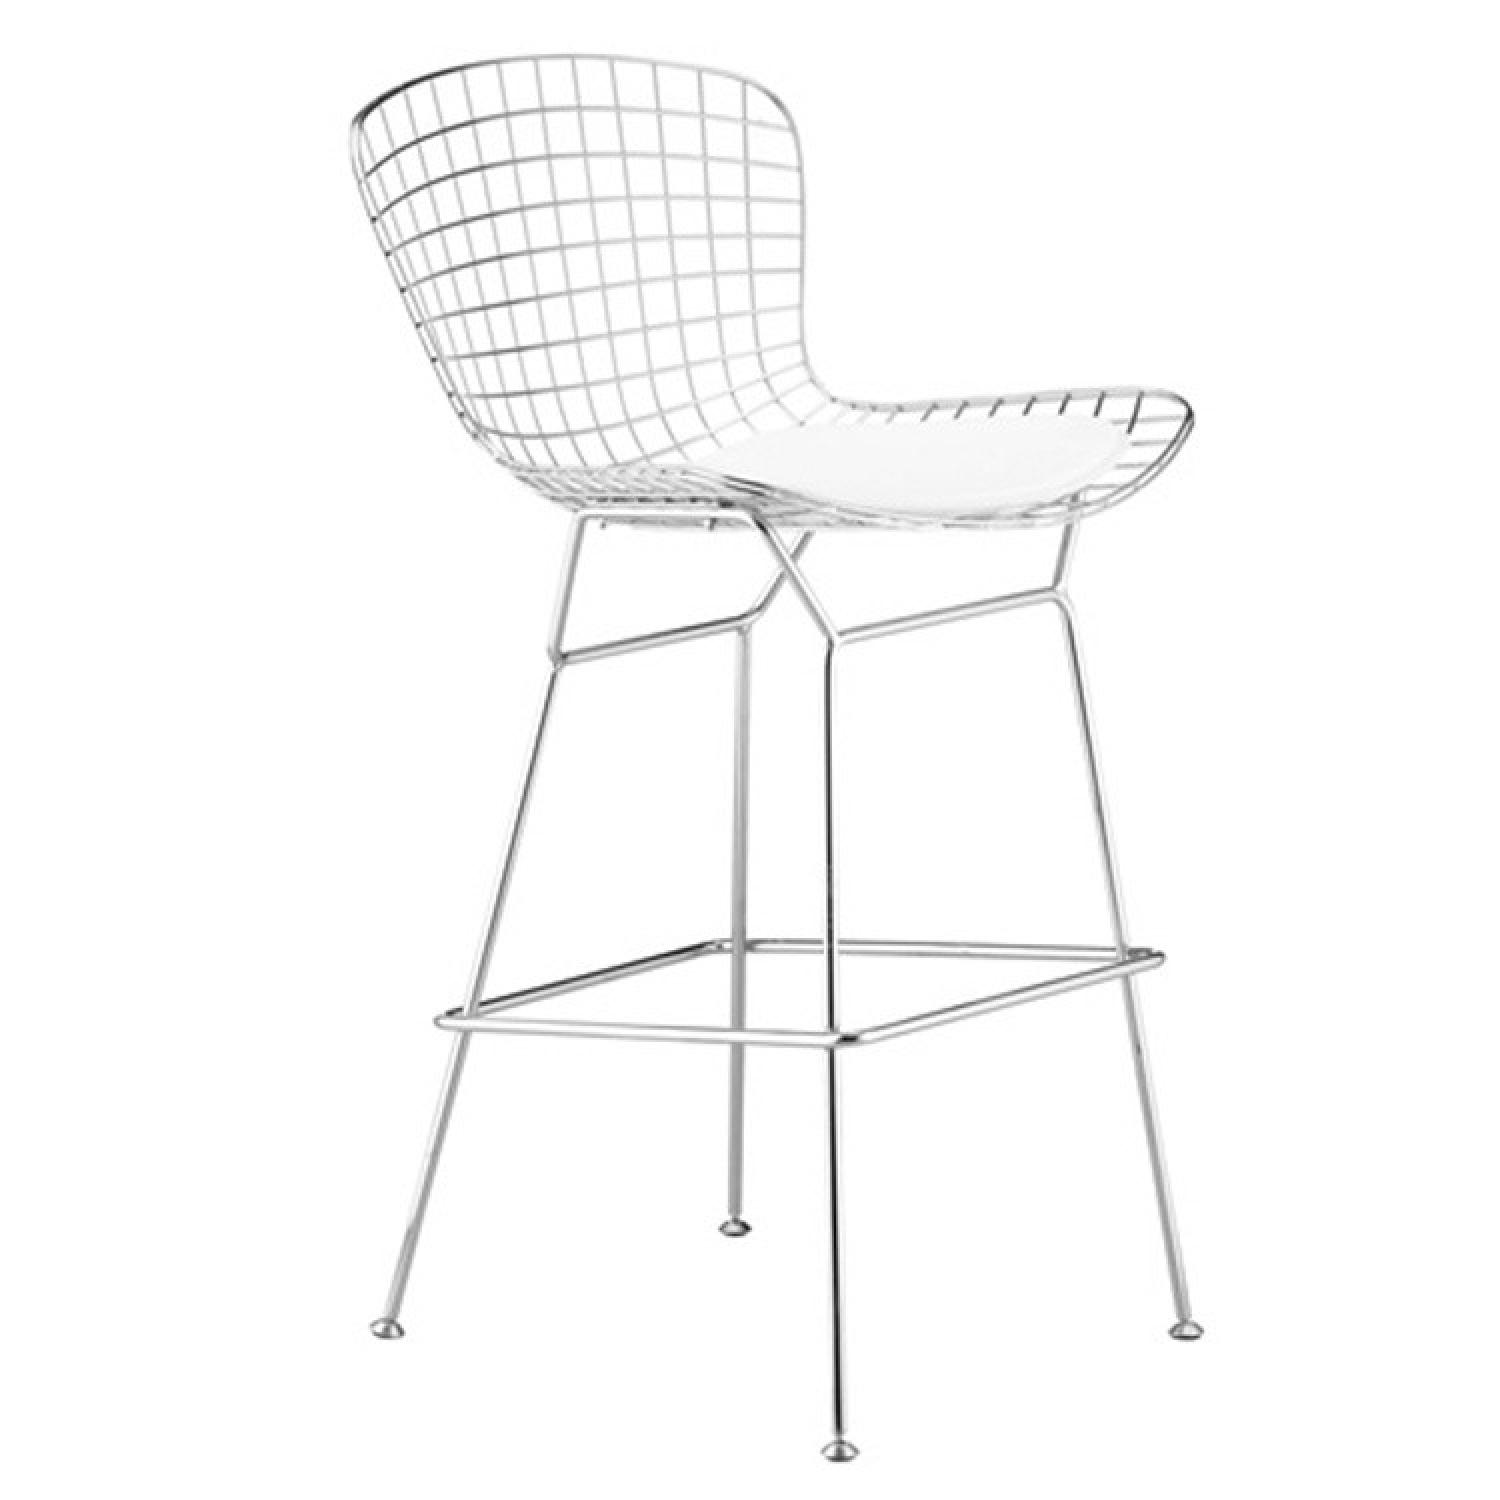 Awesome Retro Style Counter Height Wire Chair In Silver Finish Squirreltailoven Fun Painted Chair Ideas Images Squirreltailovenorg